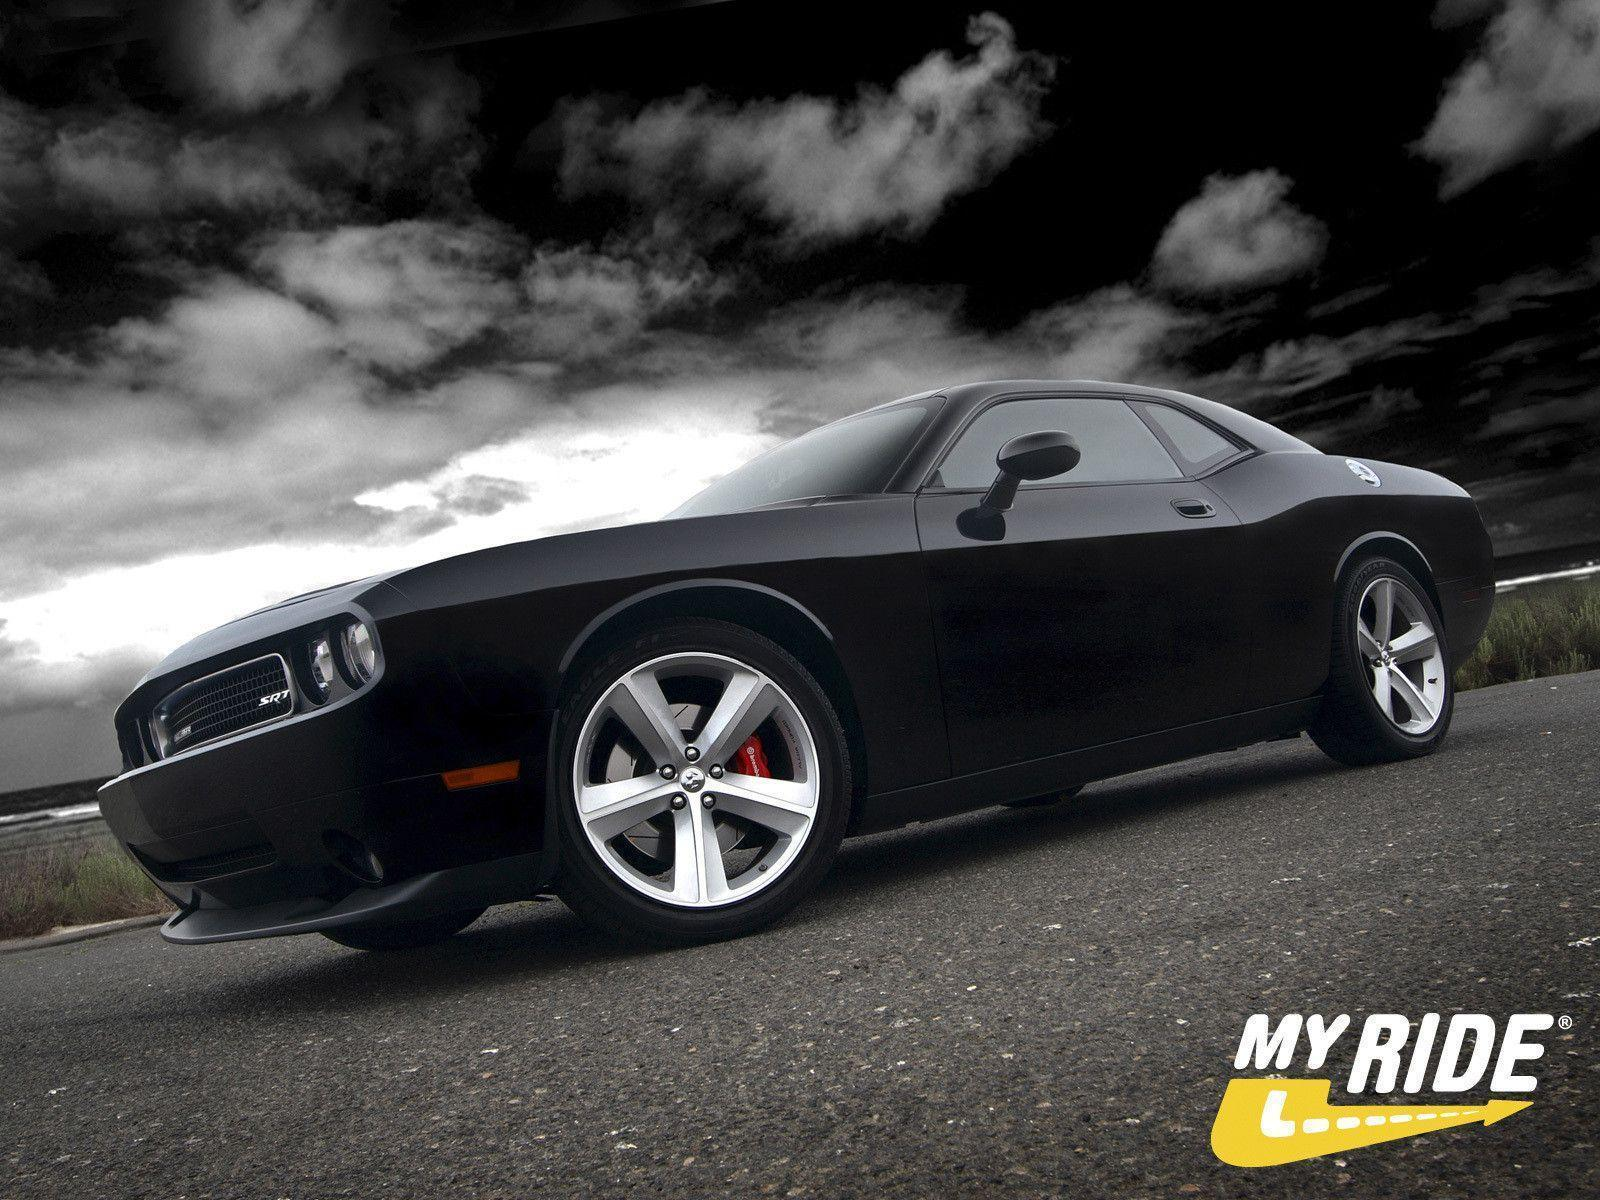 FunMozar – Muscle Cars